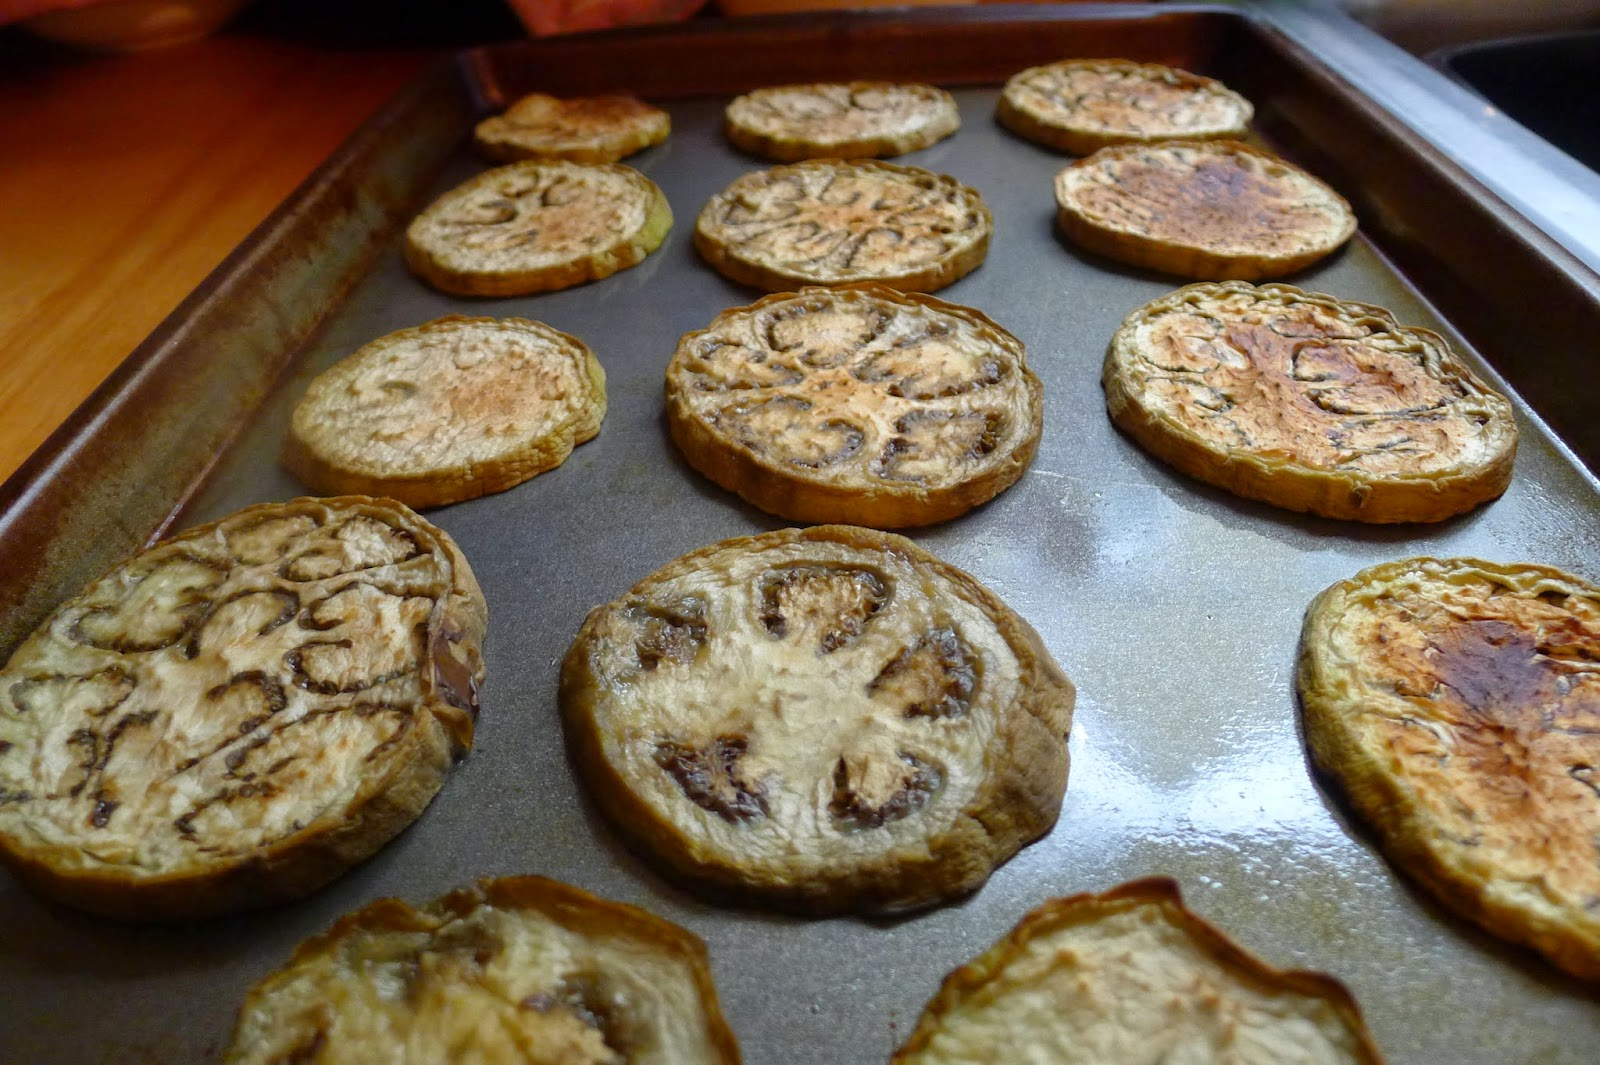 Broiled eggplant rounds, preserving eggplant